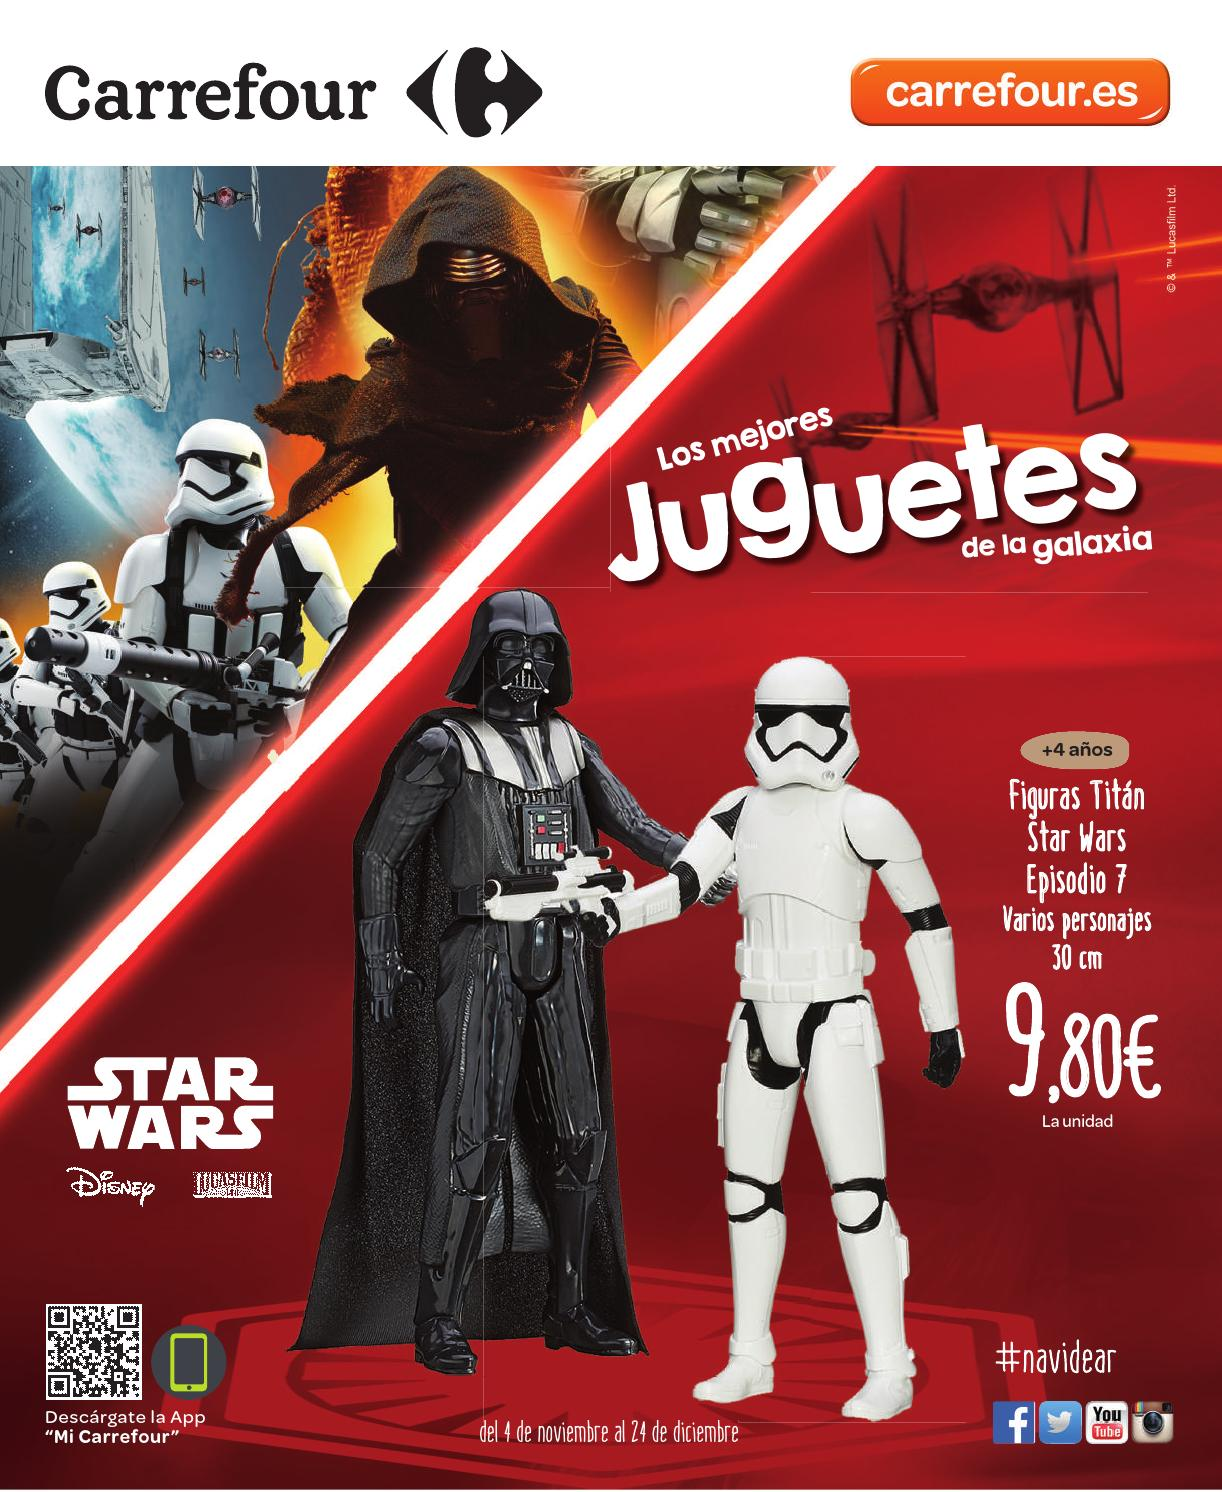 Catalogo Juguetes carrefour 2015 by Carrefour Online   issuu